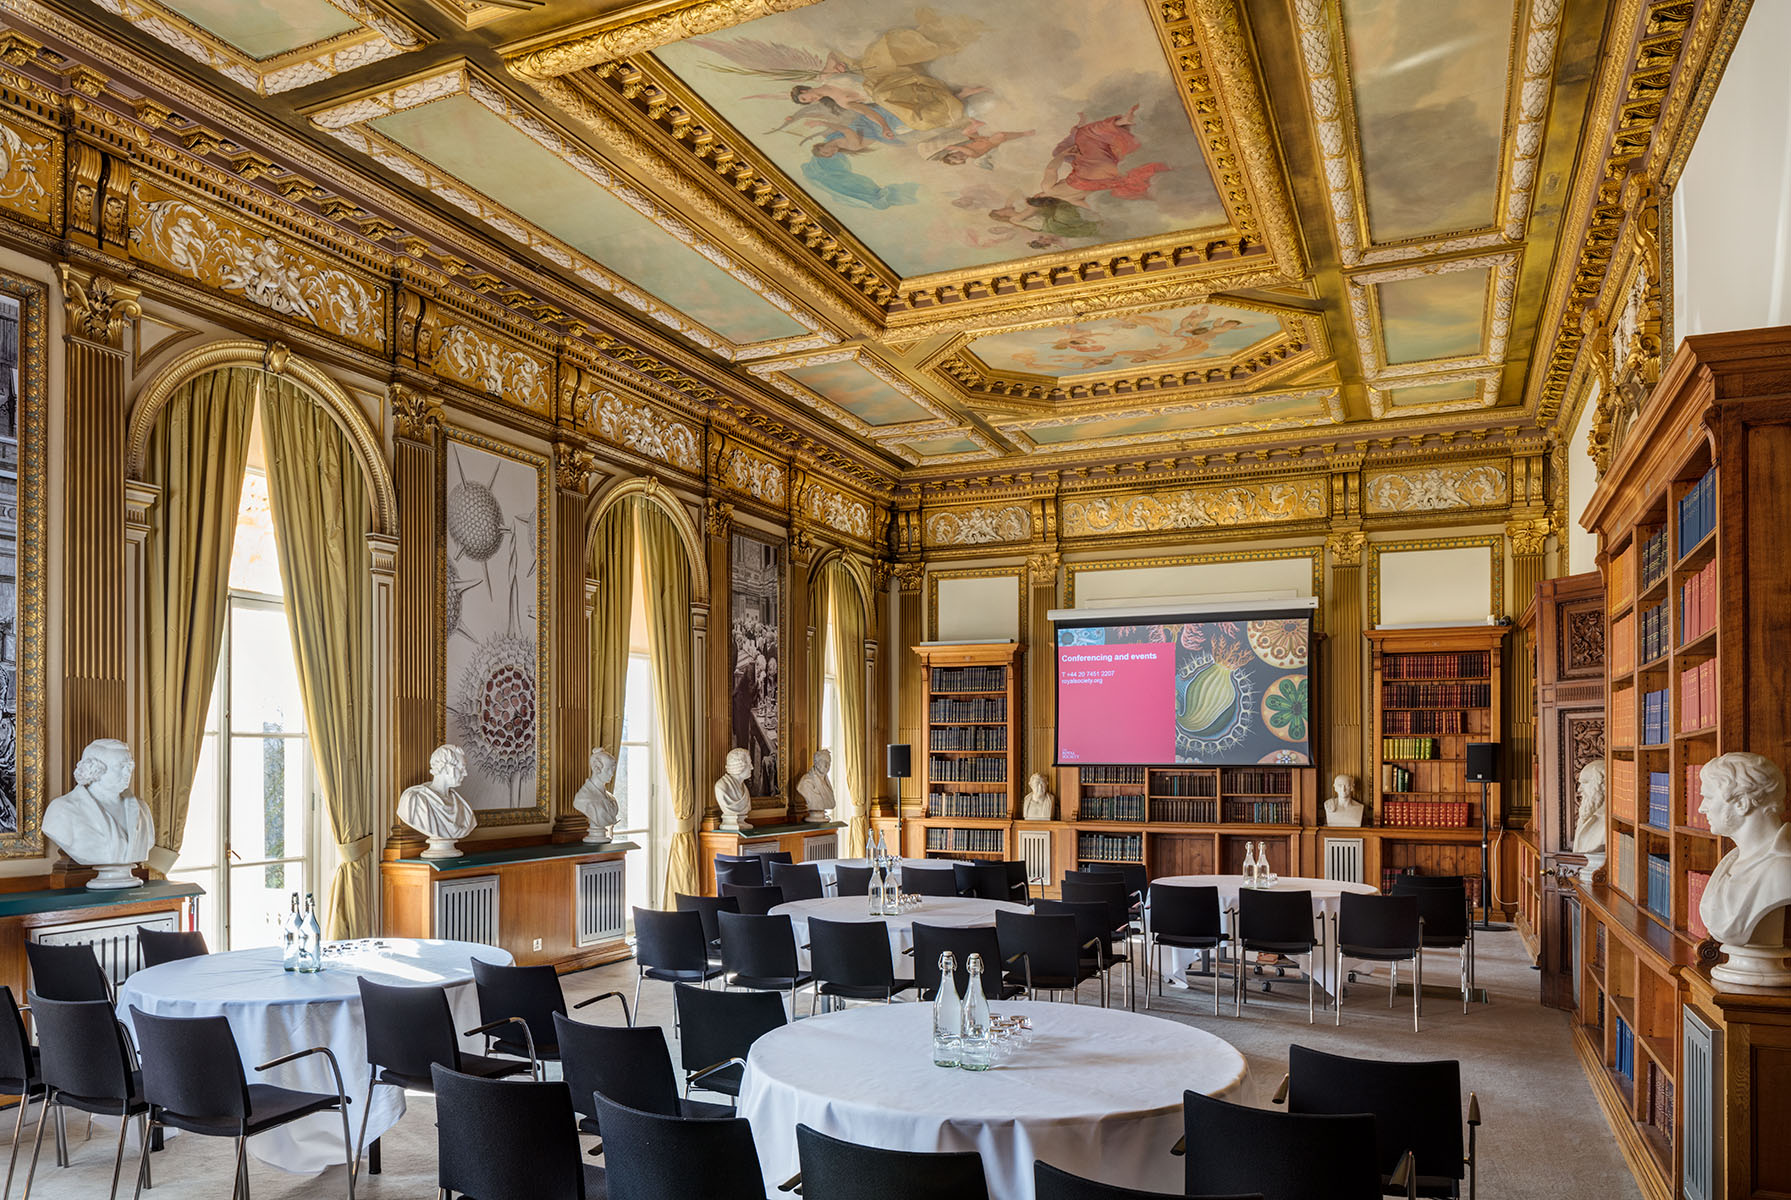 Lecture set-up in ornate HQ of worlds oldest scientific academy.Client: Royal Society